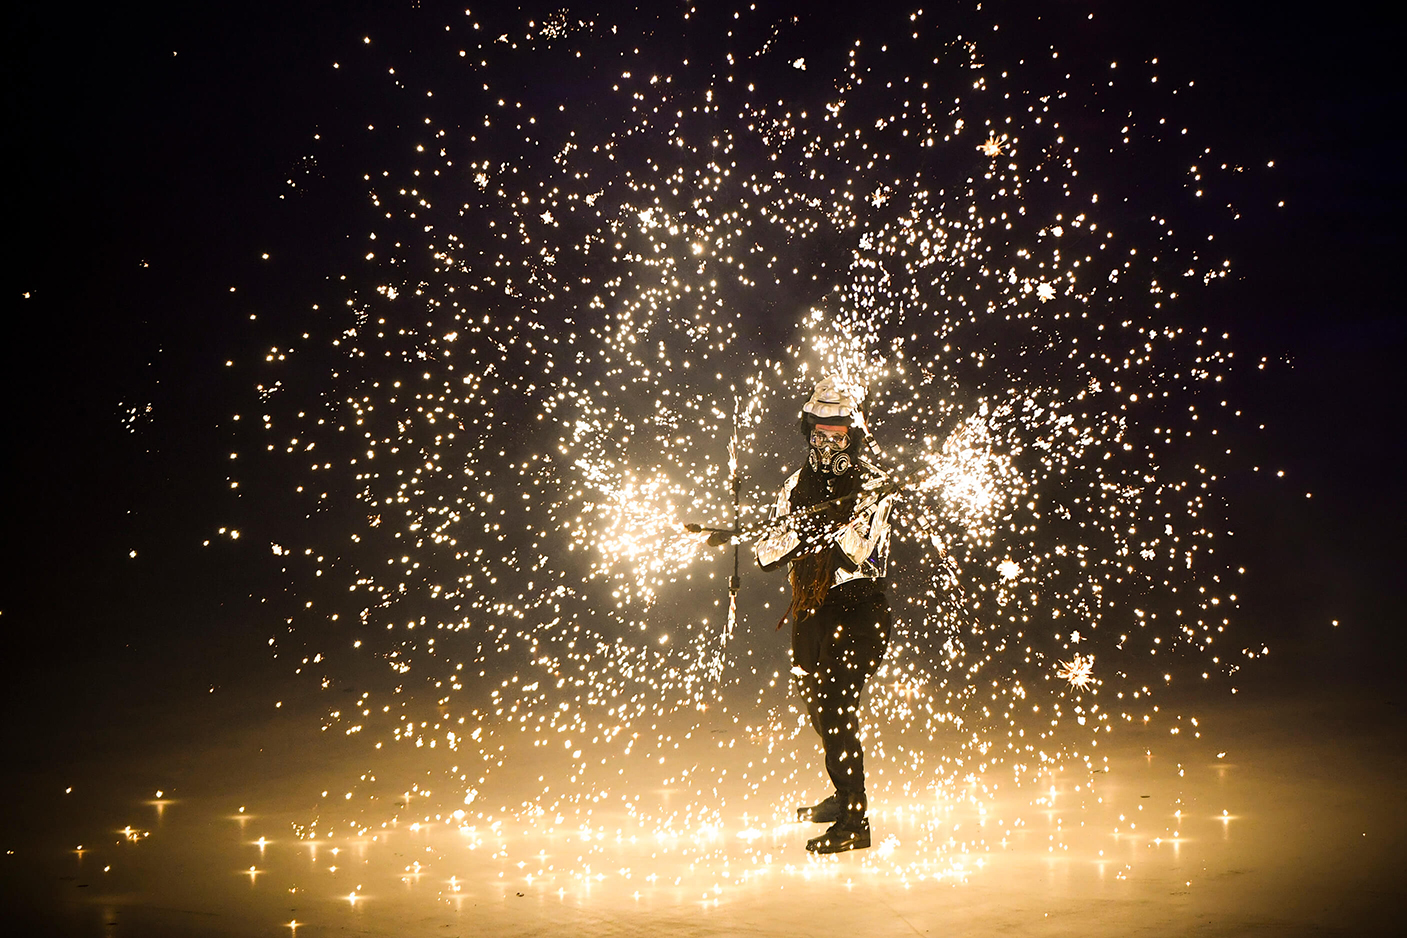 Pyeongchang Winter Olympics Opening Ceremony Performer - Tim Timmehtek Goddard - Pyrotechnic Dragon Staff Pyro costume